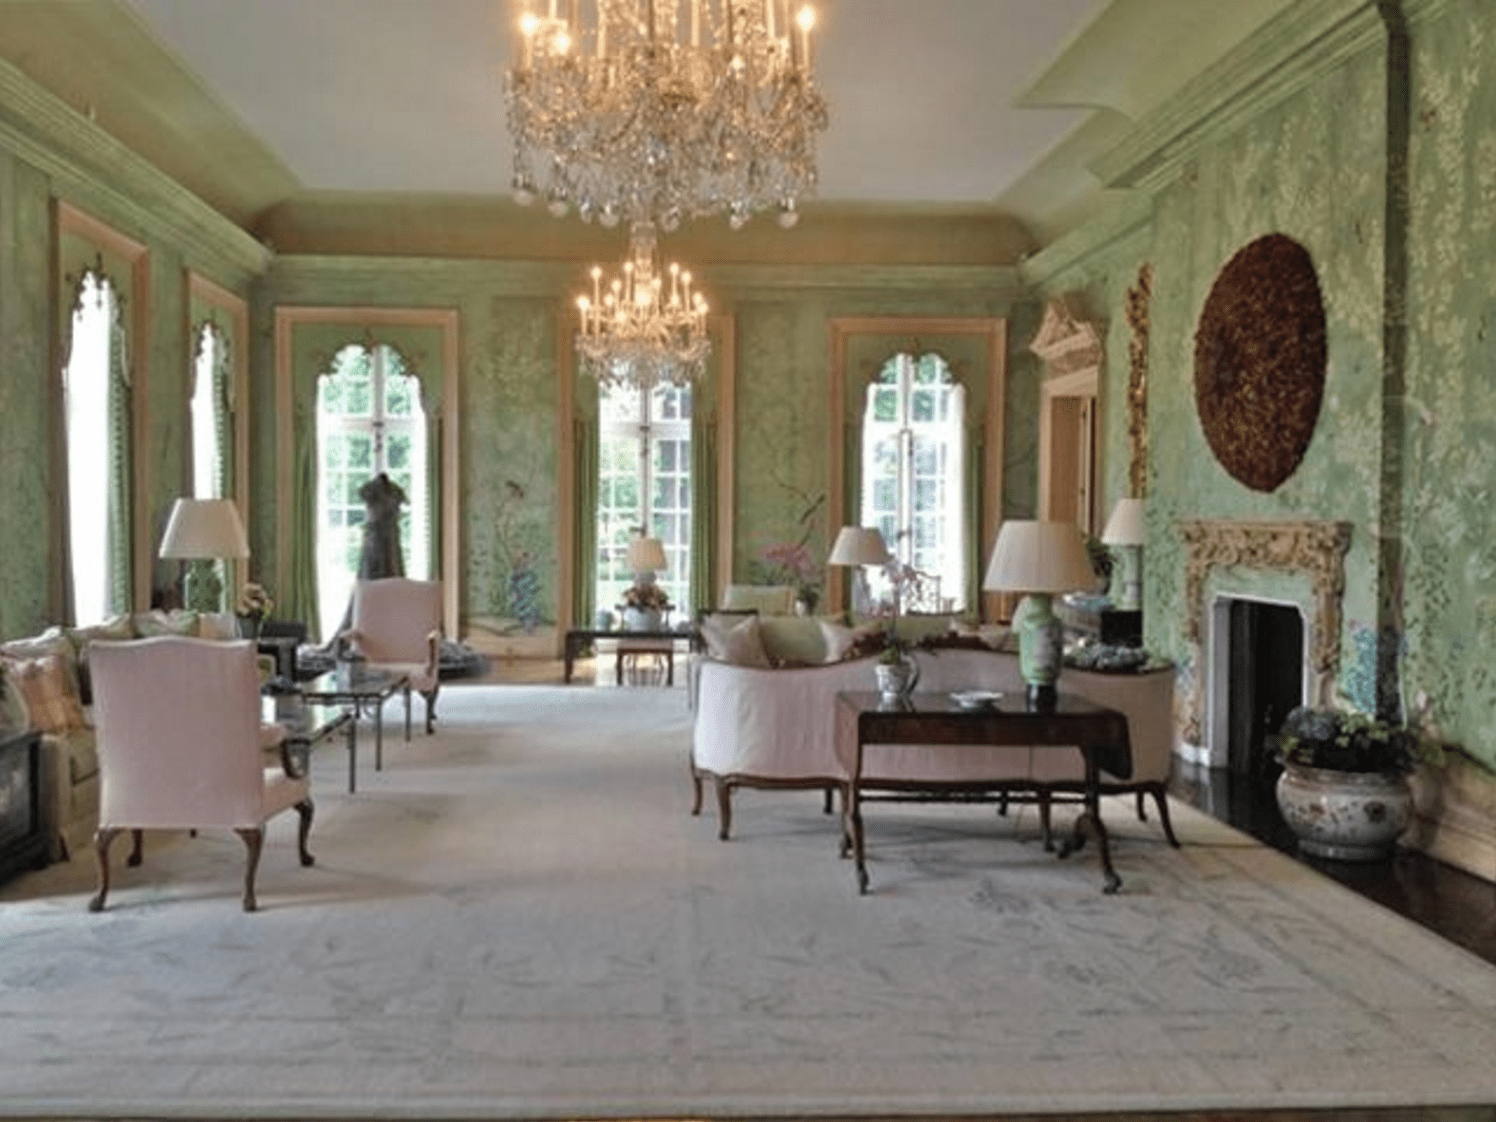 Gracie And The Garden Room At Winfield House The Glam Pad